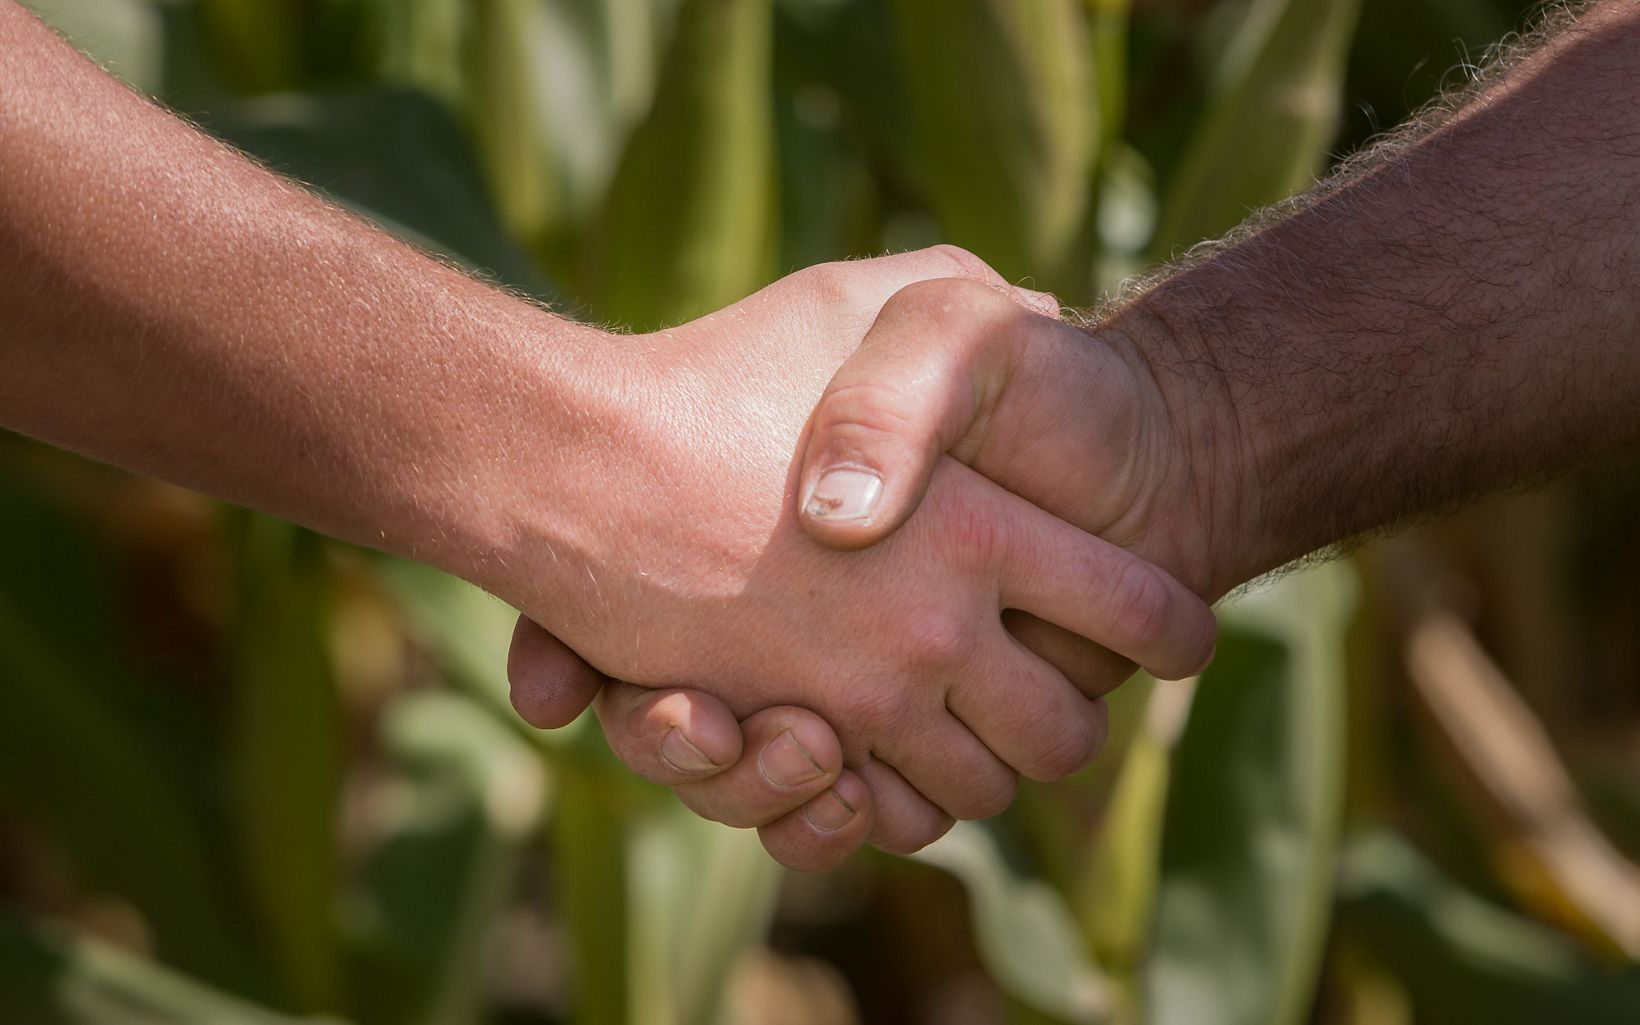 Saginaw Bay Watershed Agriculture, farmer and watershed  technician shake hands.